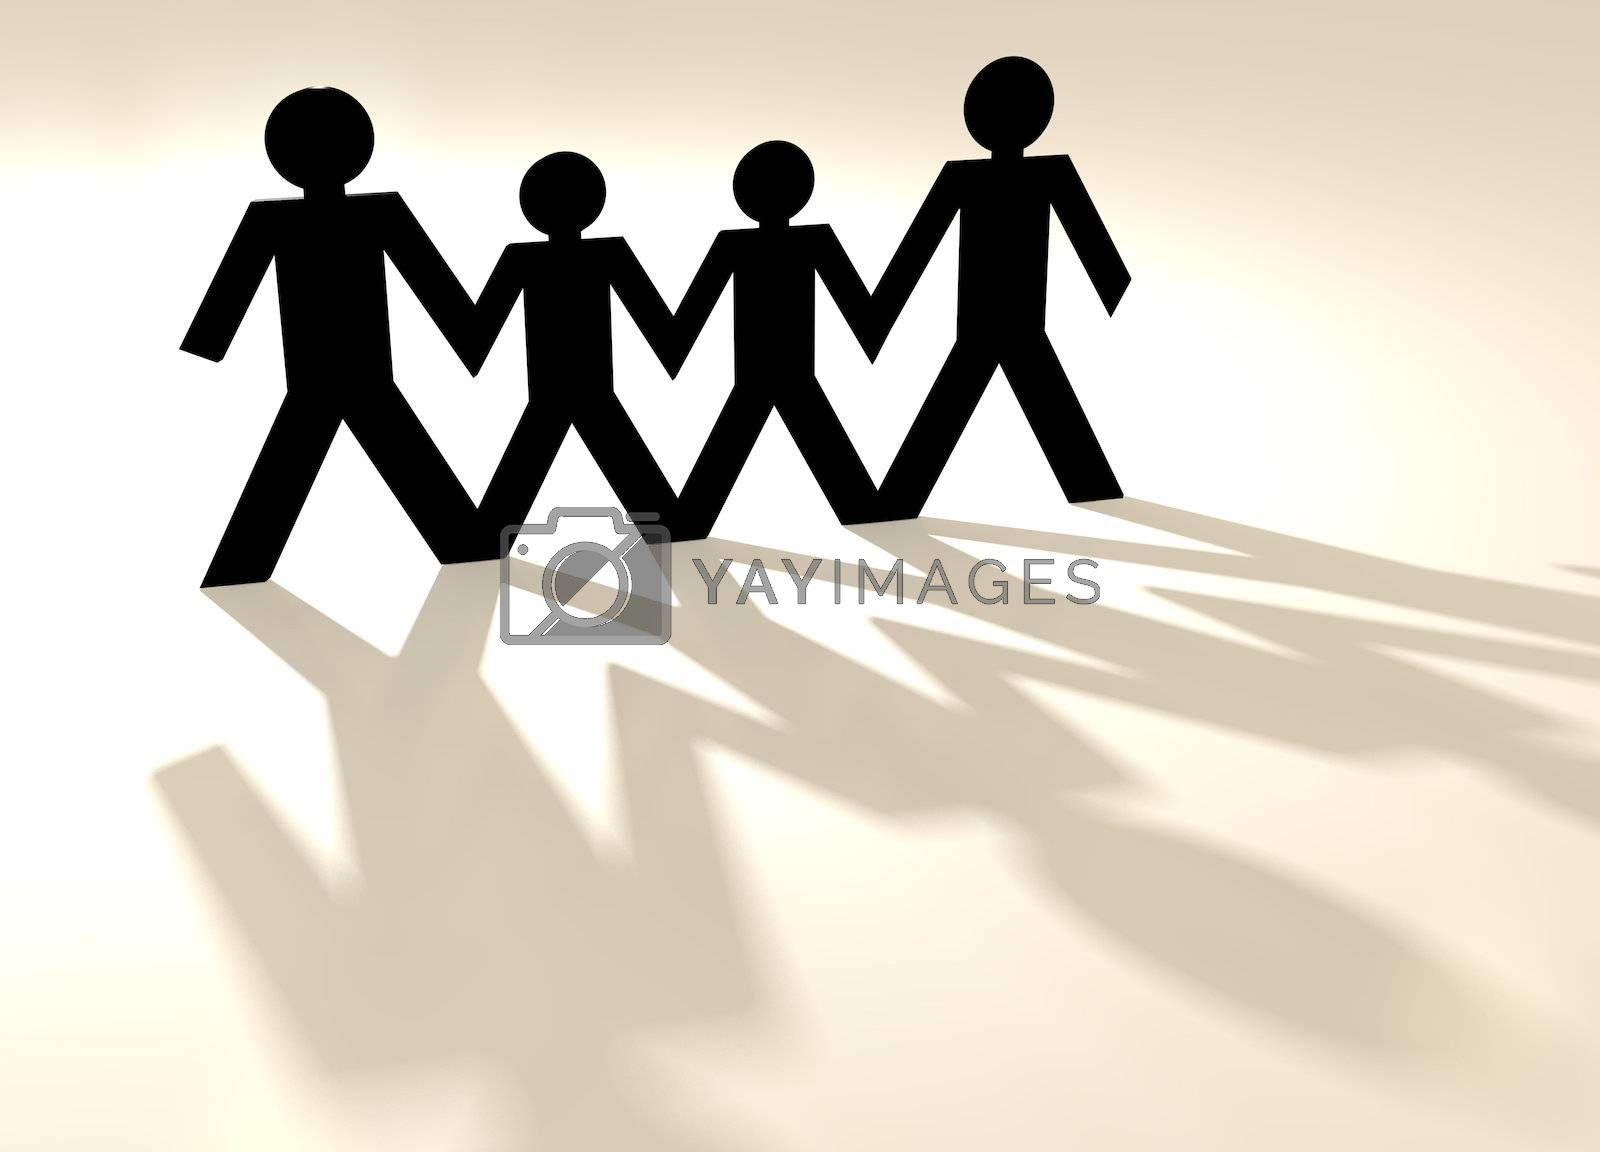 group of four people in a paper chain in same sex family